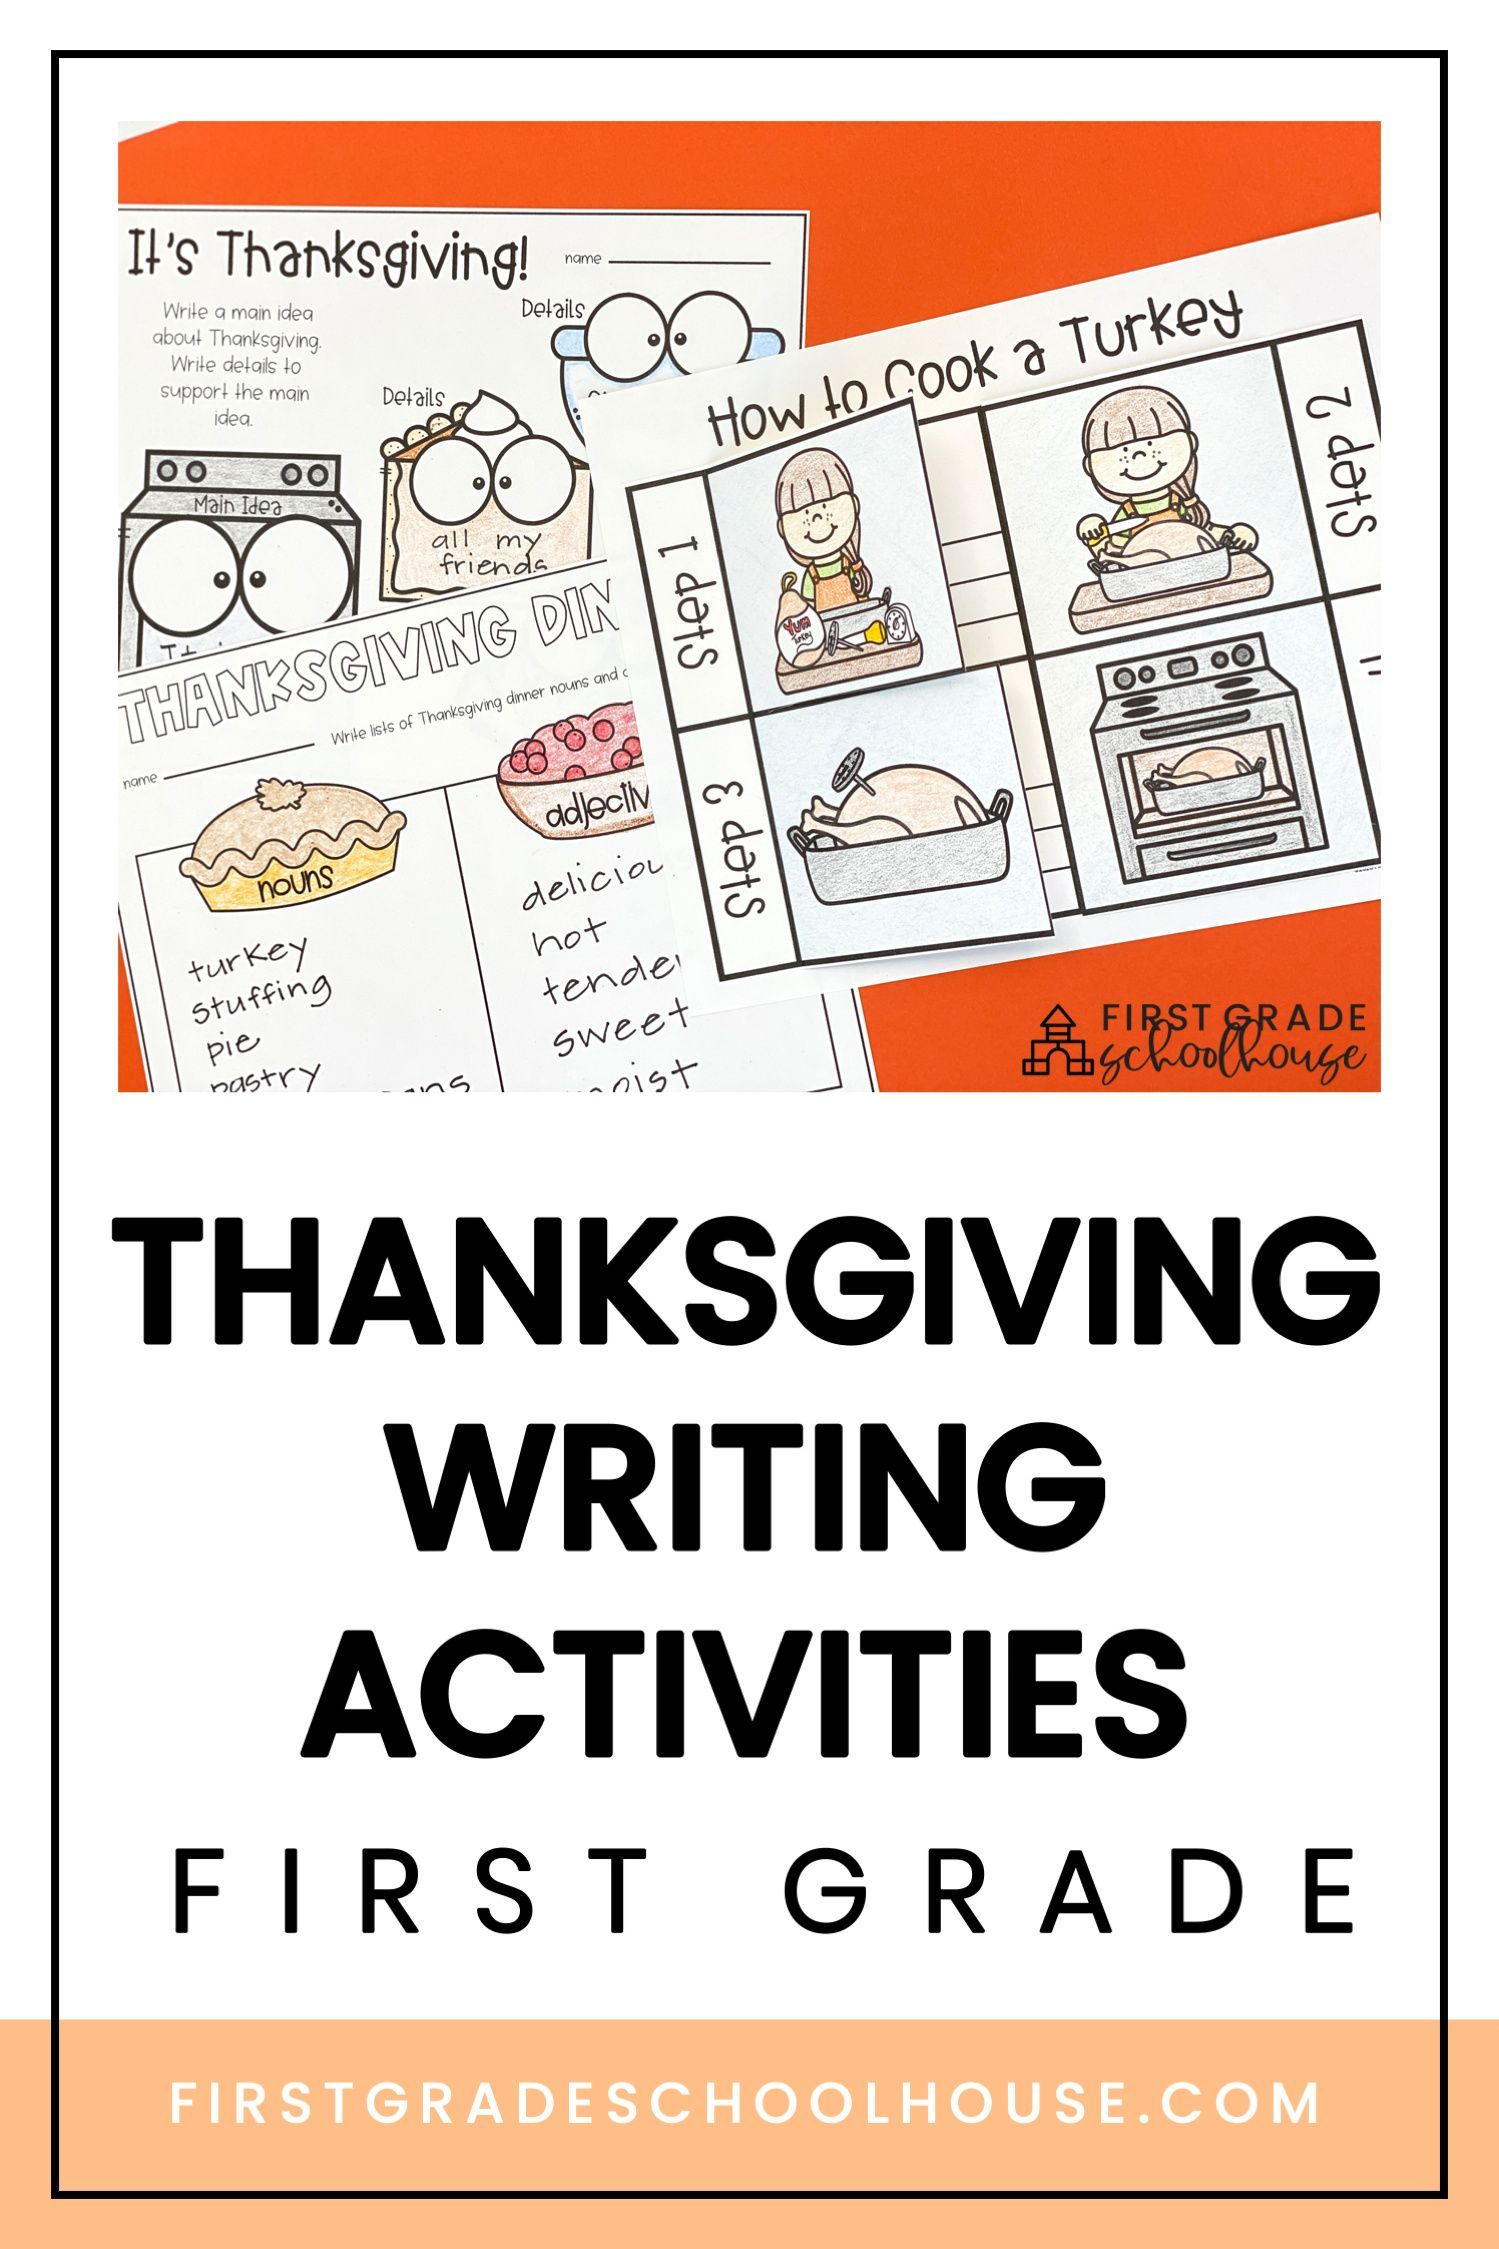 Thanksgiving Writing Activities Prompts First Grade Thanksgiving Writing Thanksgiving Writing Activity Writing Activities [ 2249 x 1499 Pixel ]